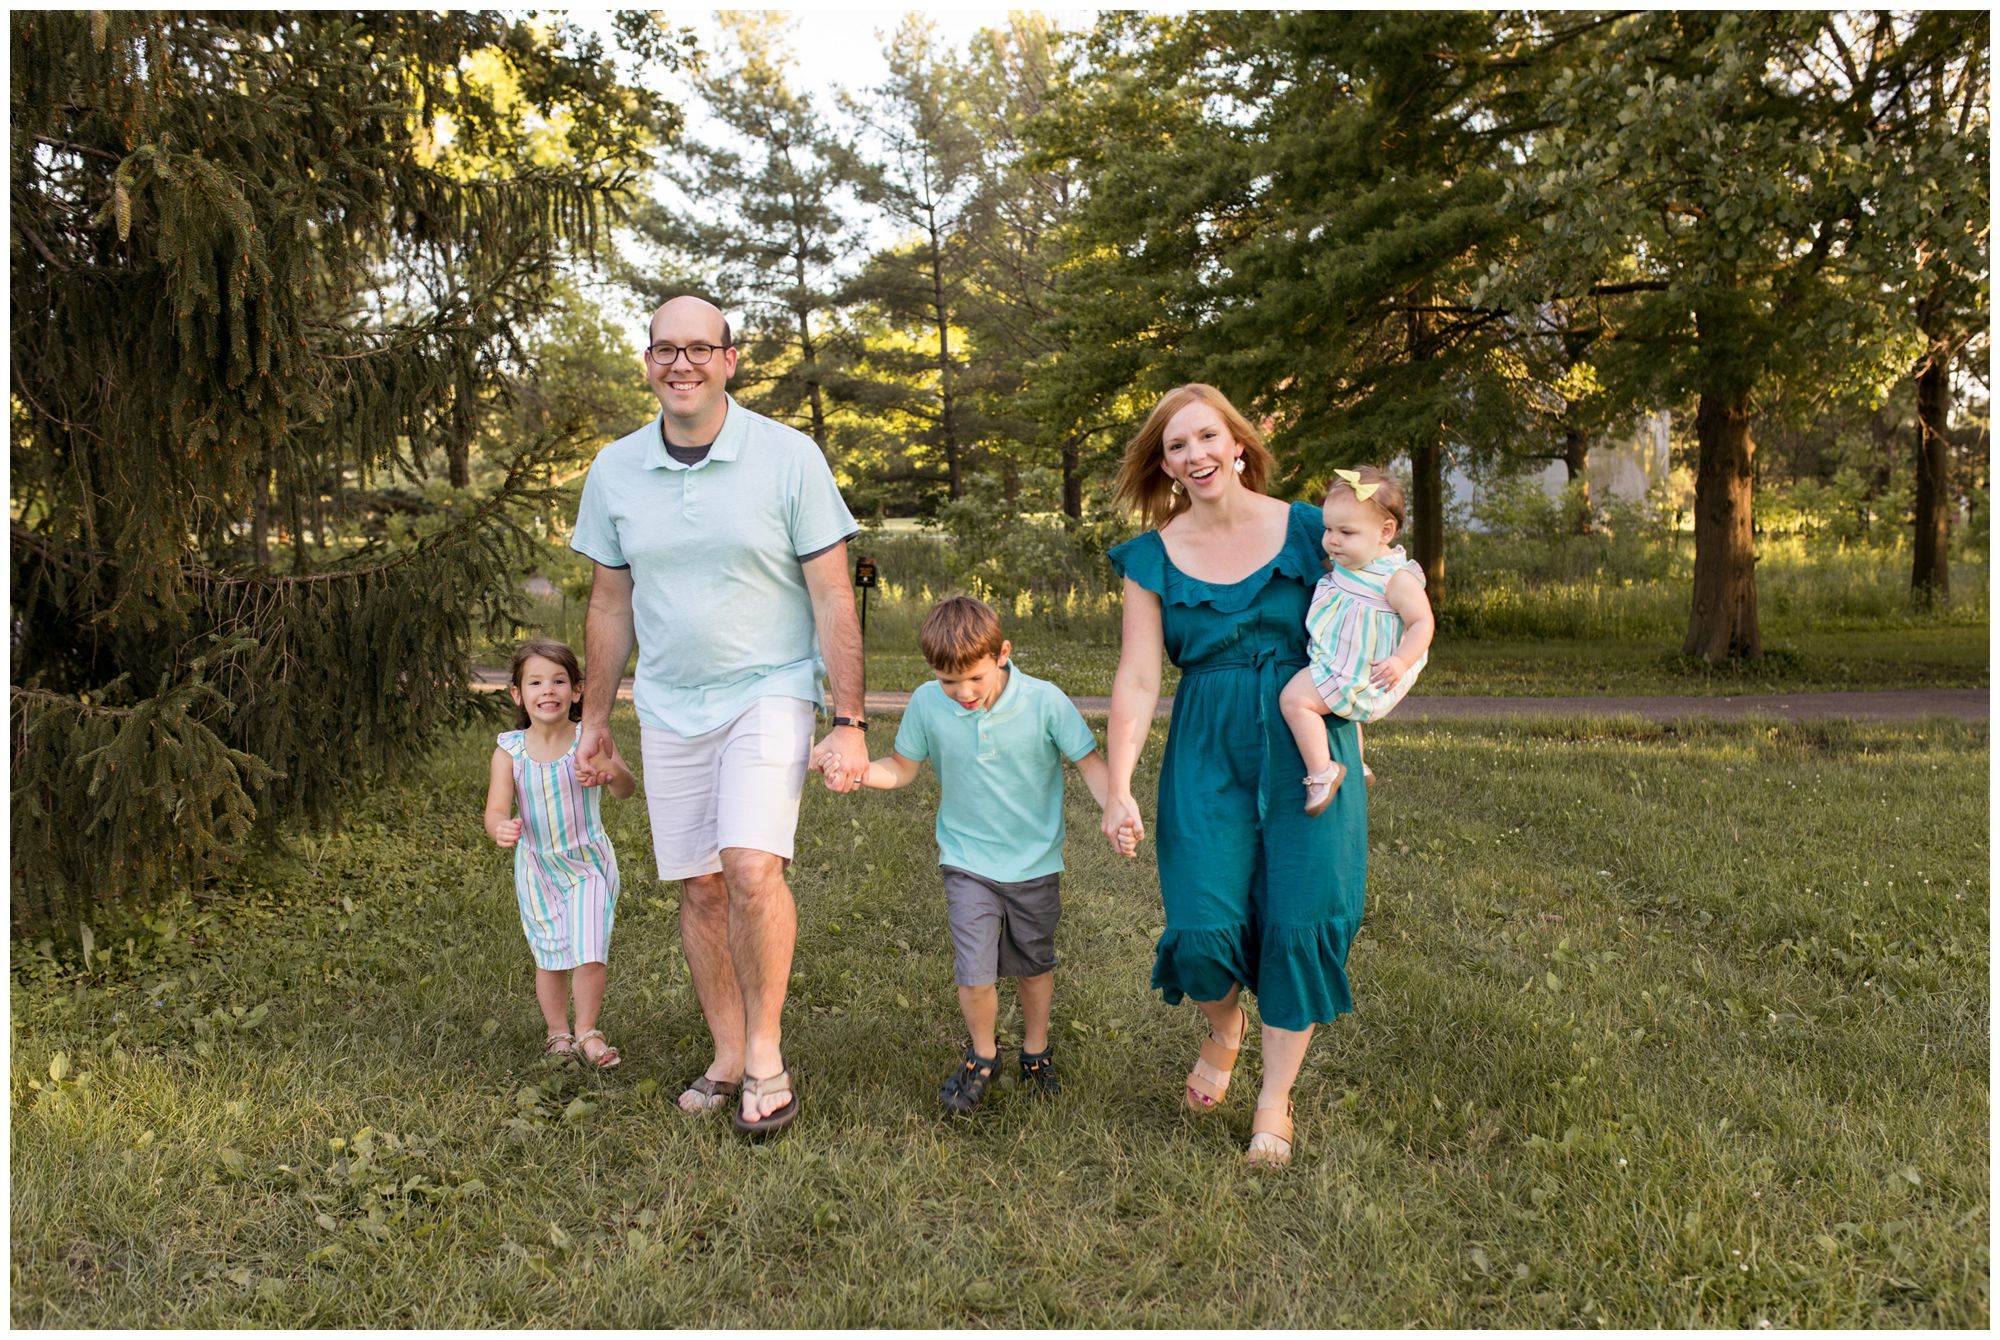 family holding hands and walking during Coxhall Gardens photo session in Carmel Indiana